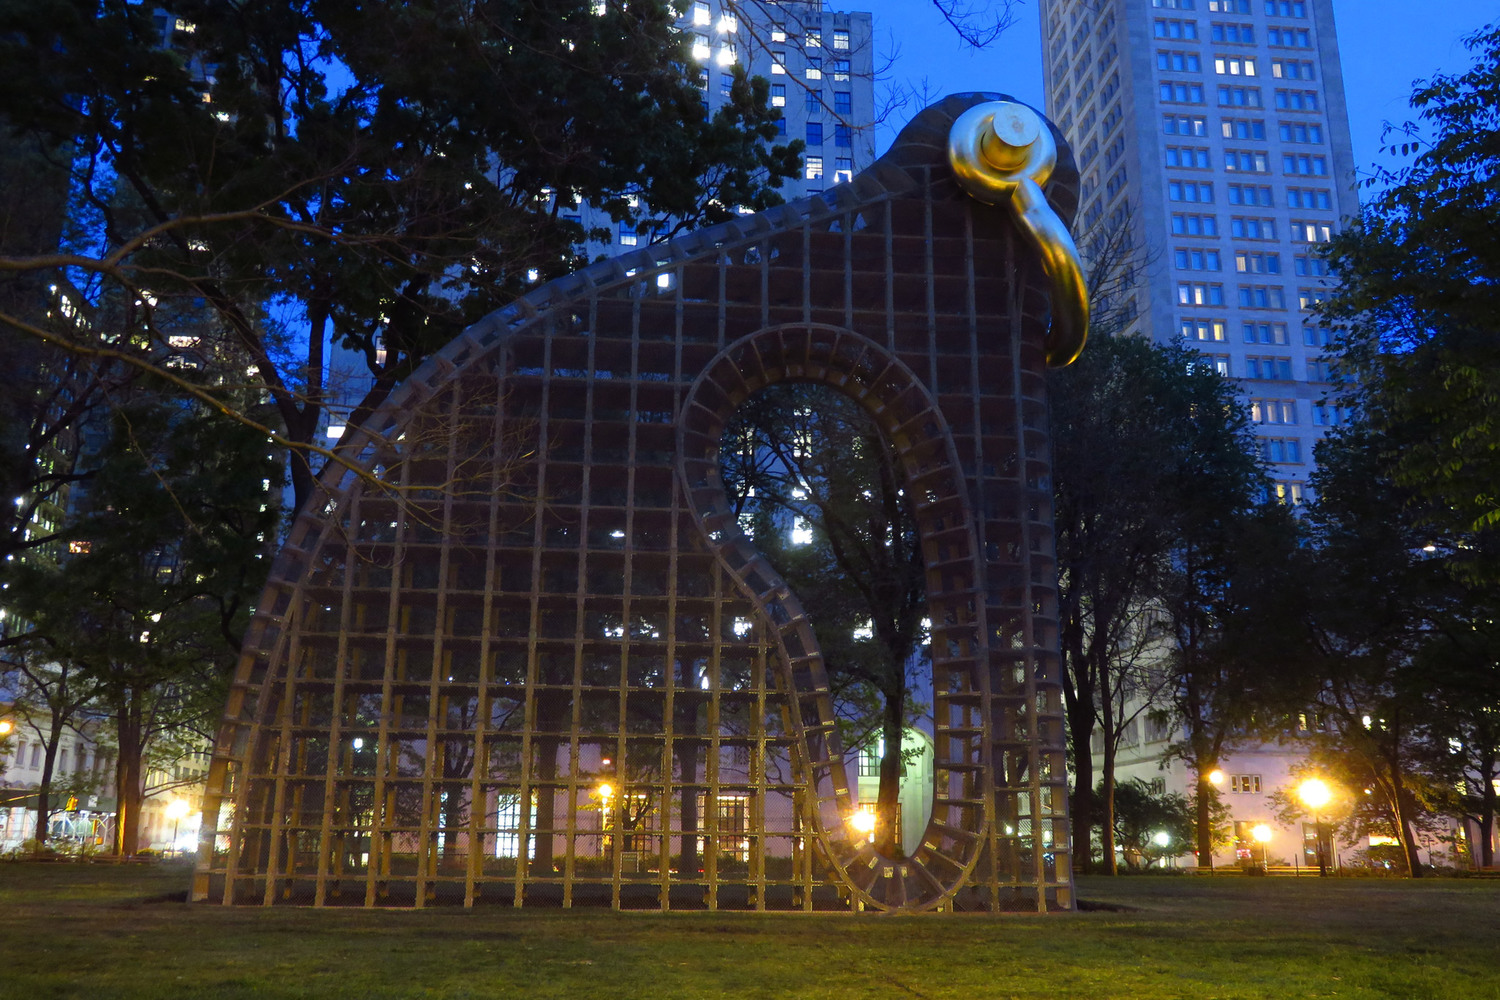 "Big Bling | <i>Big Bling</i> by Martin Puryear will officially go on view in Madison Square Park next week, but I was there this evening.  ""At forty feet high, Big Bling will achieve colossal scale and elicit a range of readings, stimulating diverse and profound interpretations of its meaning.  The largest temporary outdoor sculpture Puryear has created, Big Bling is part animal form, part abstract sculpture, and part intellectual meditation. The artist's signature organic vocabulary appears in a graceful, sinewy outline and an amoeboid form in the work's center."""